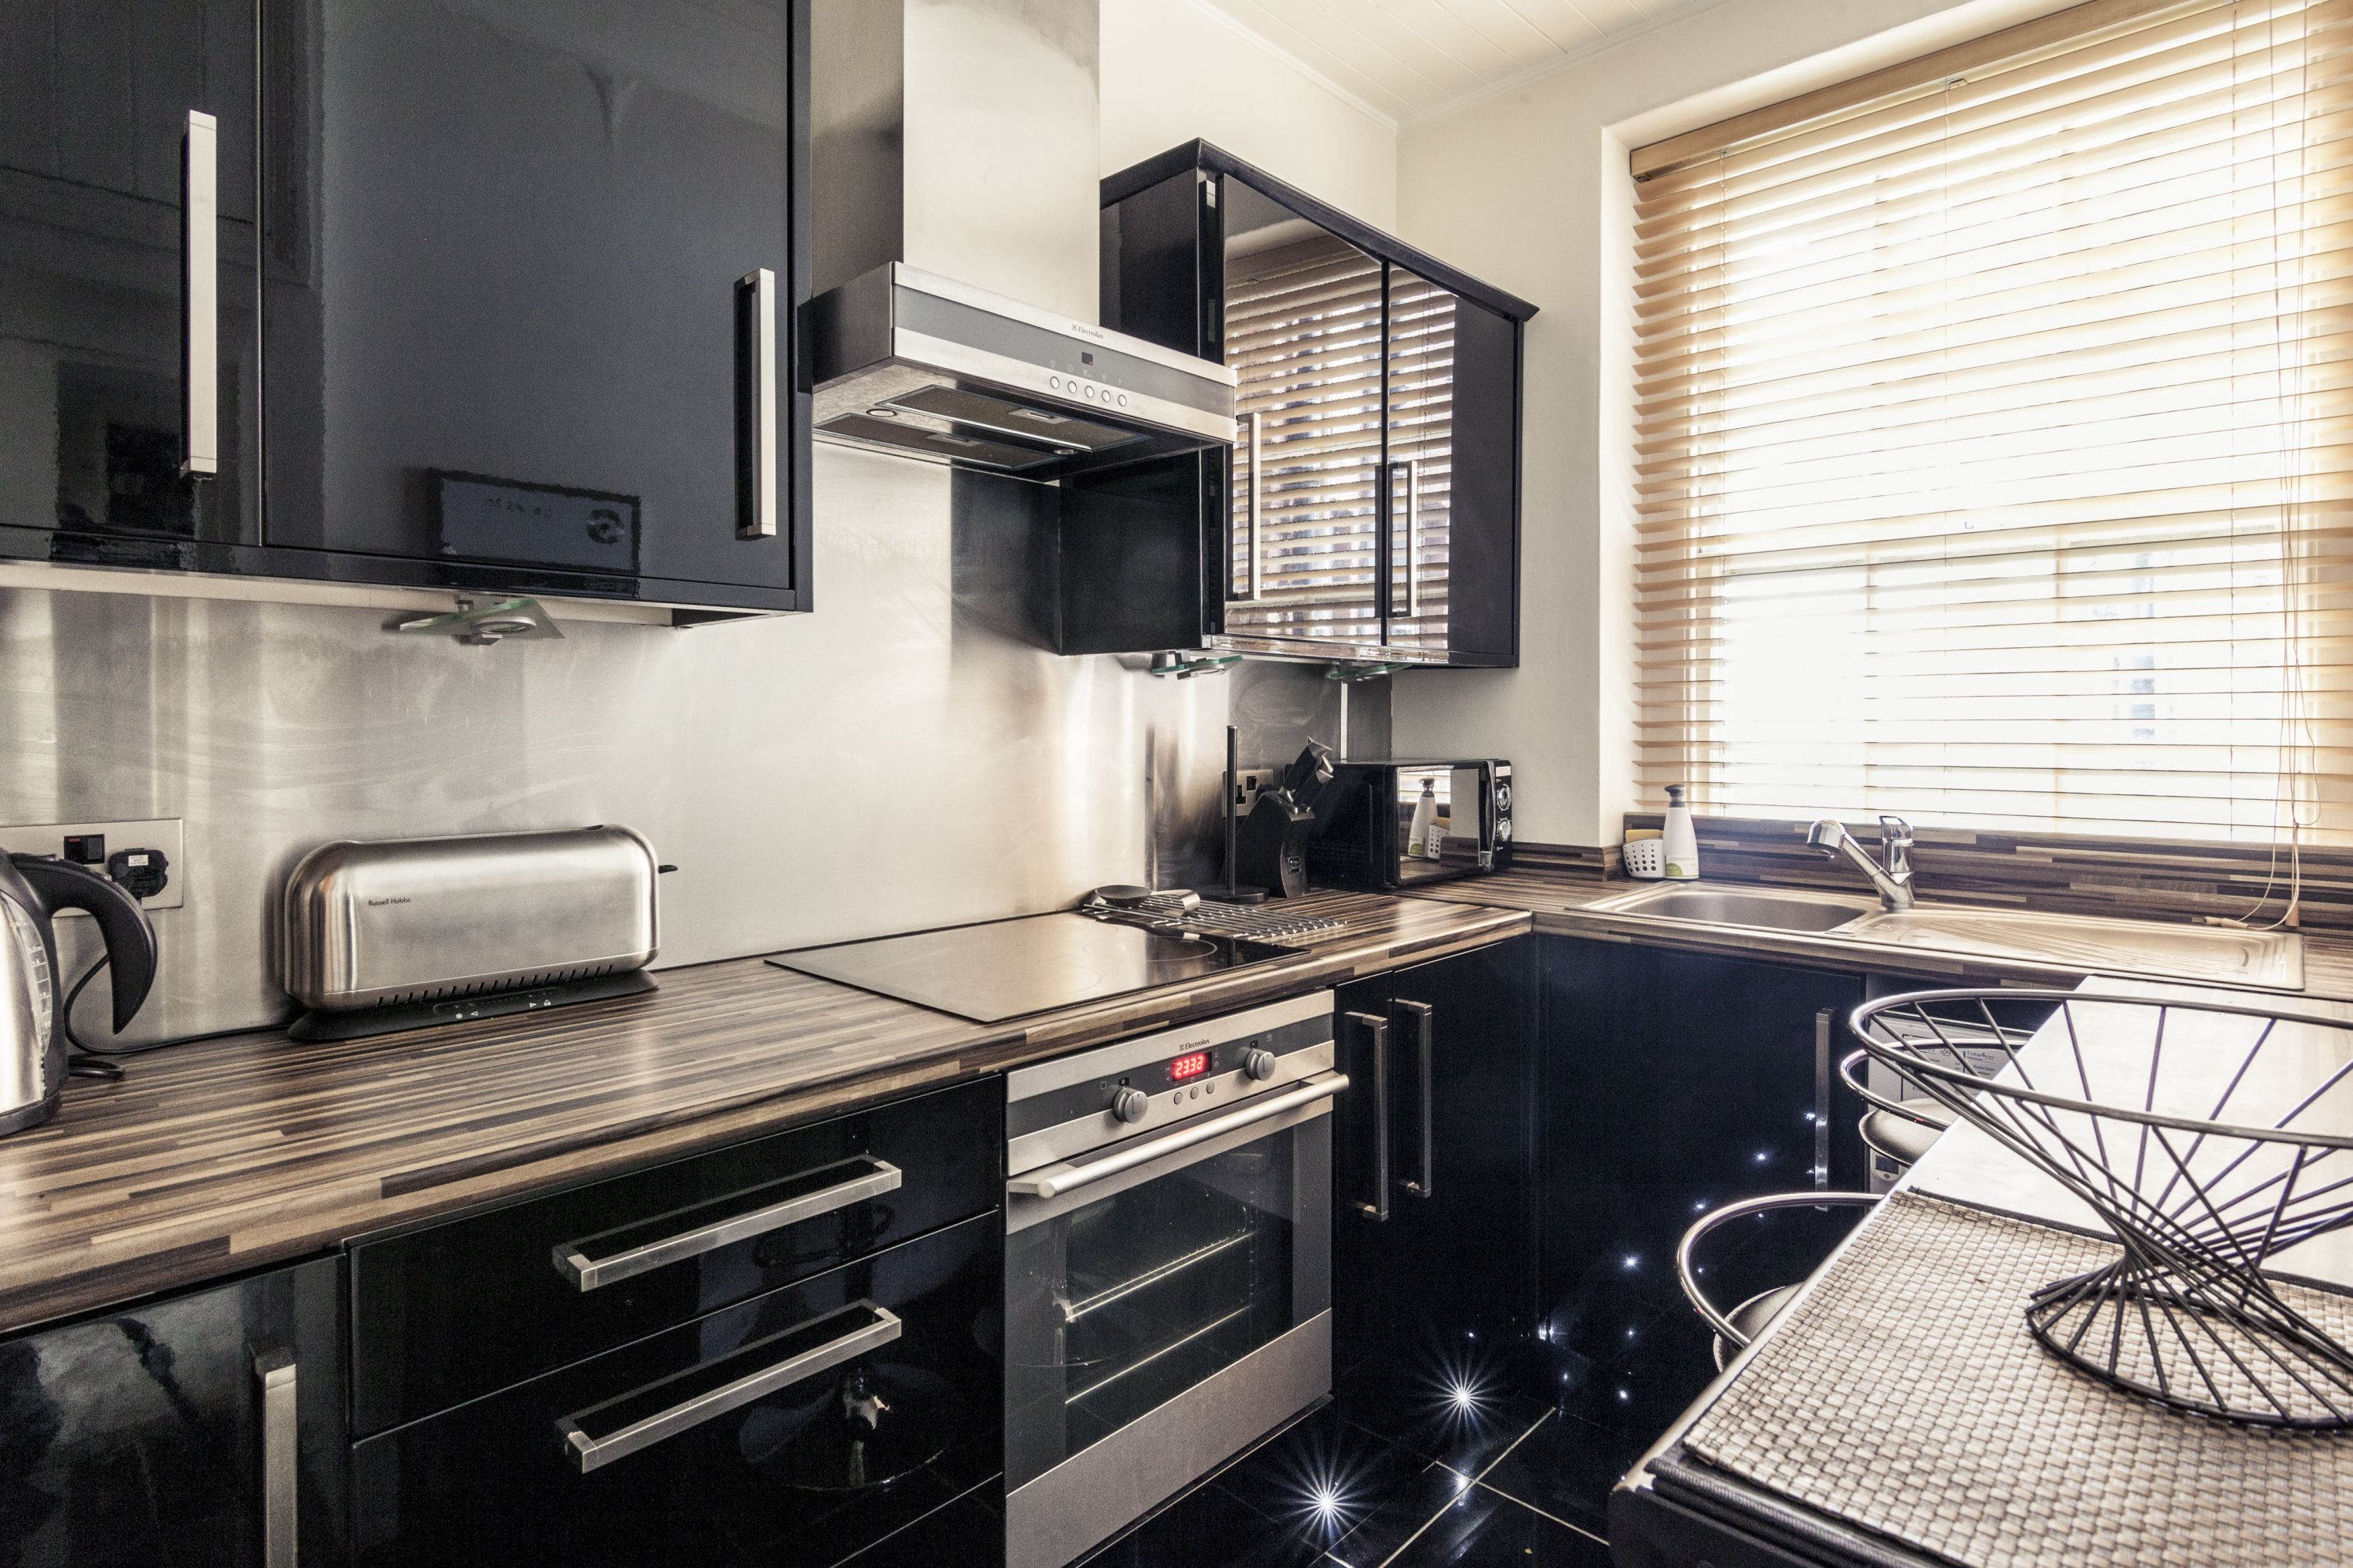 A photo of our Oxford Street apartment's kitchen